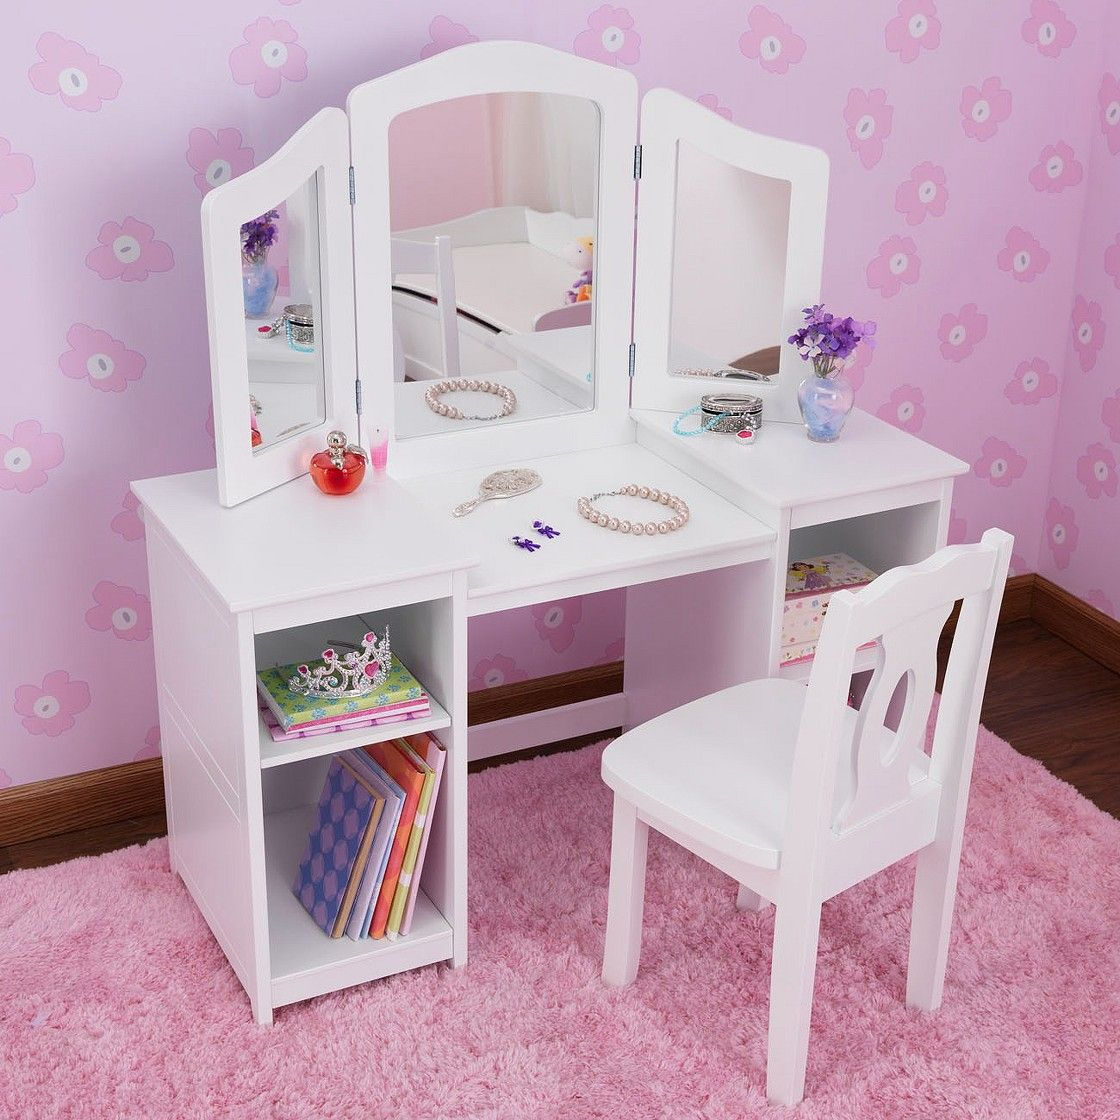 Kidkraft Deluxe Vanity Table with Chair  White  Divas